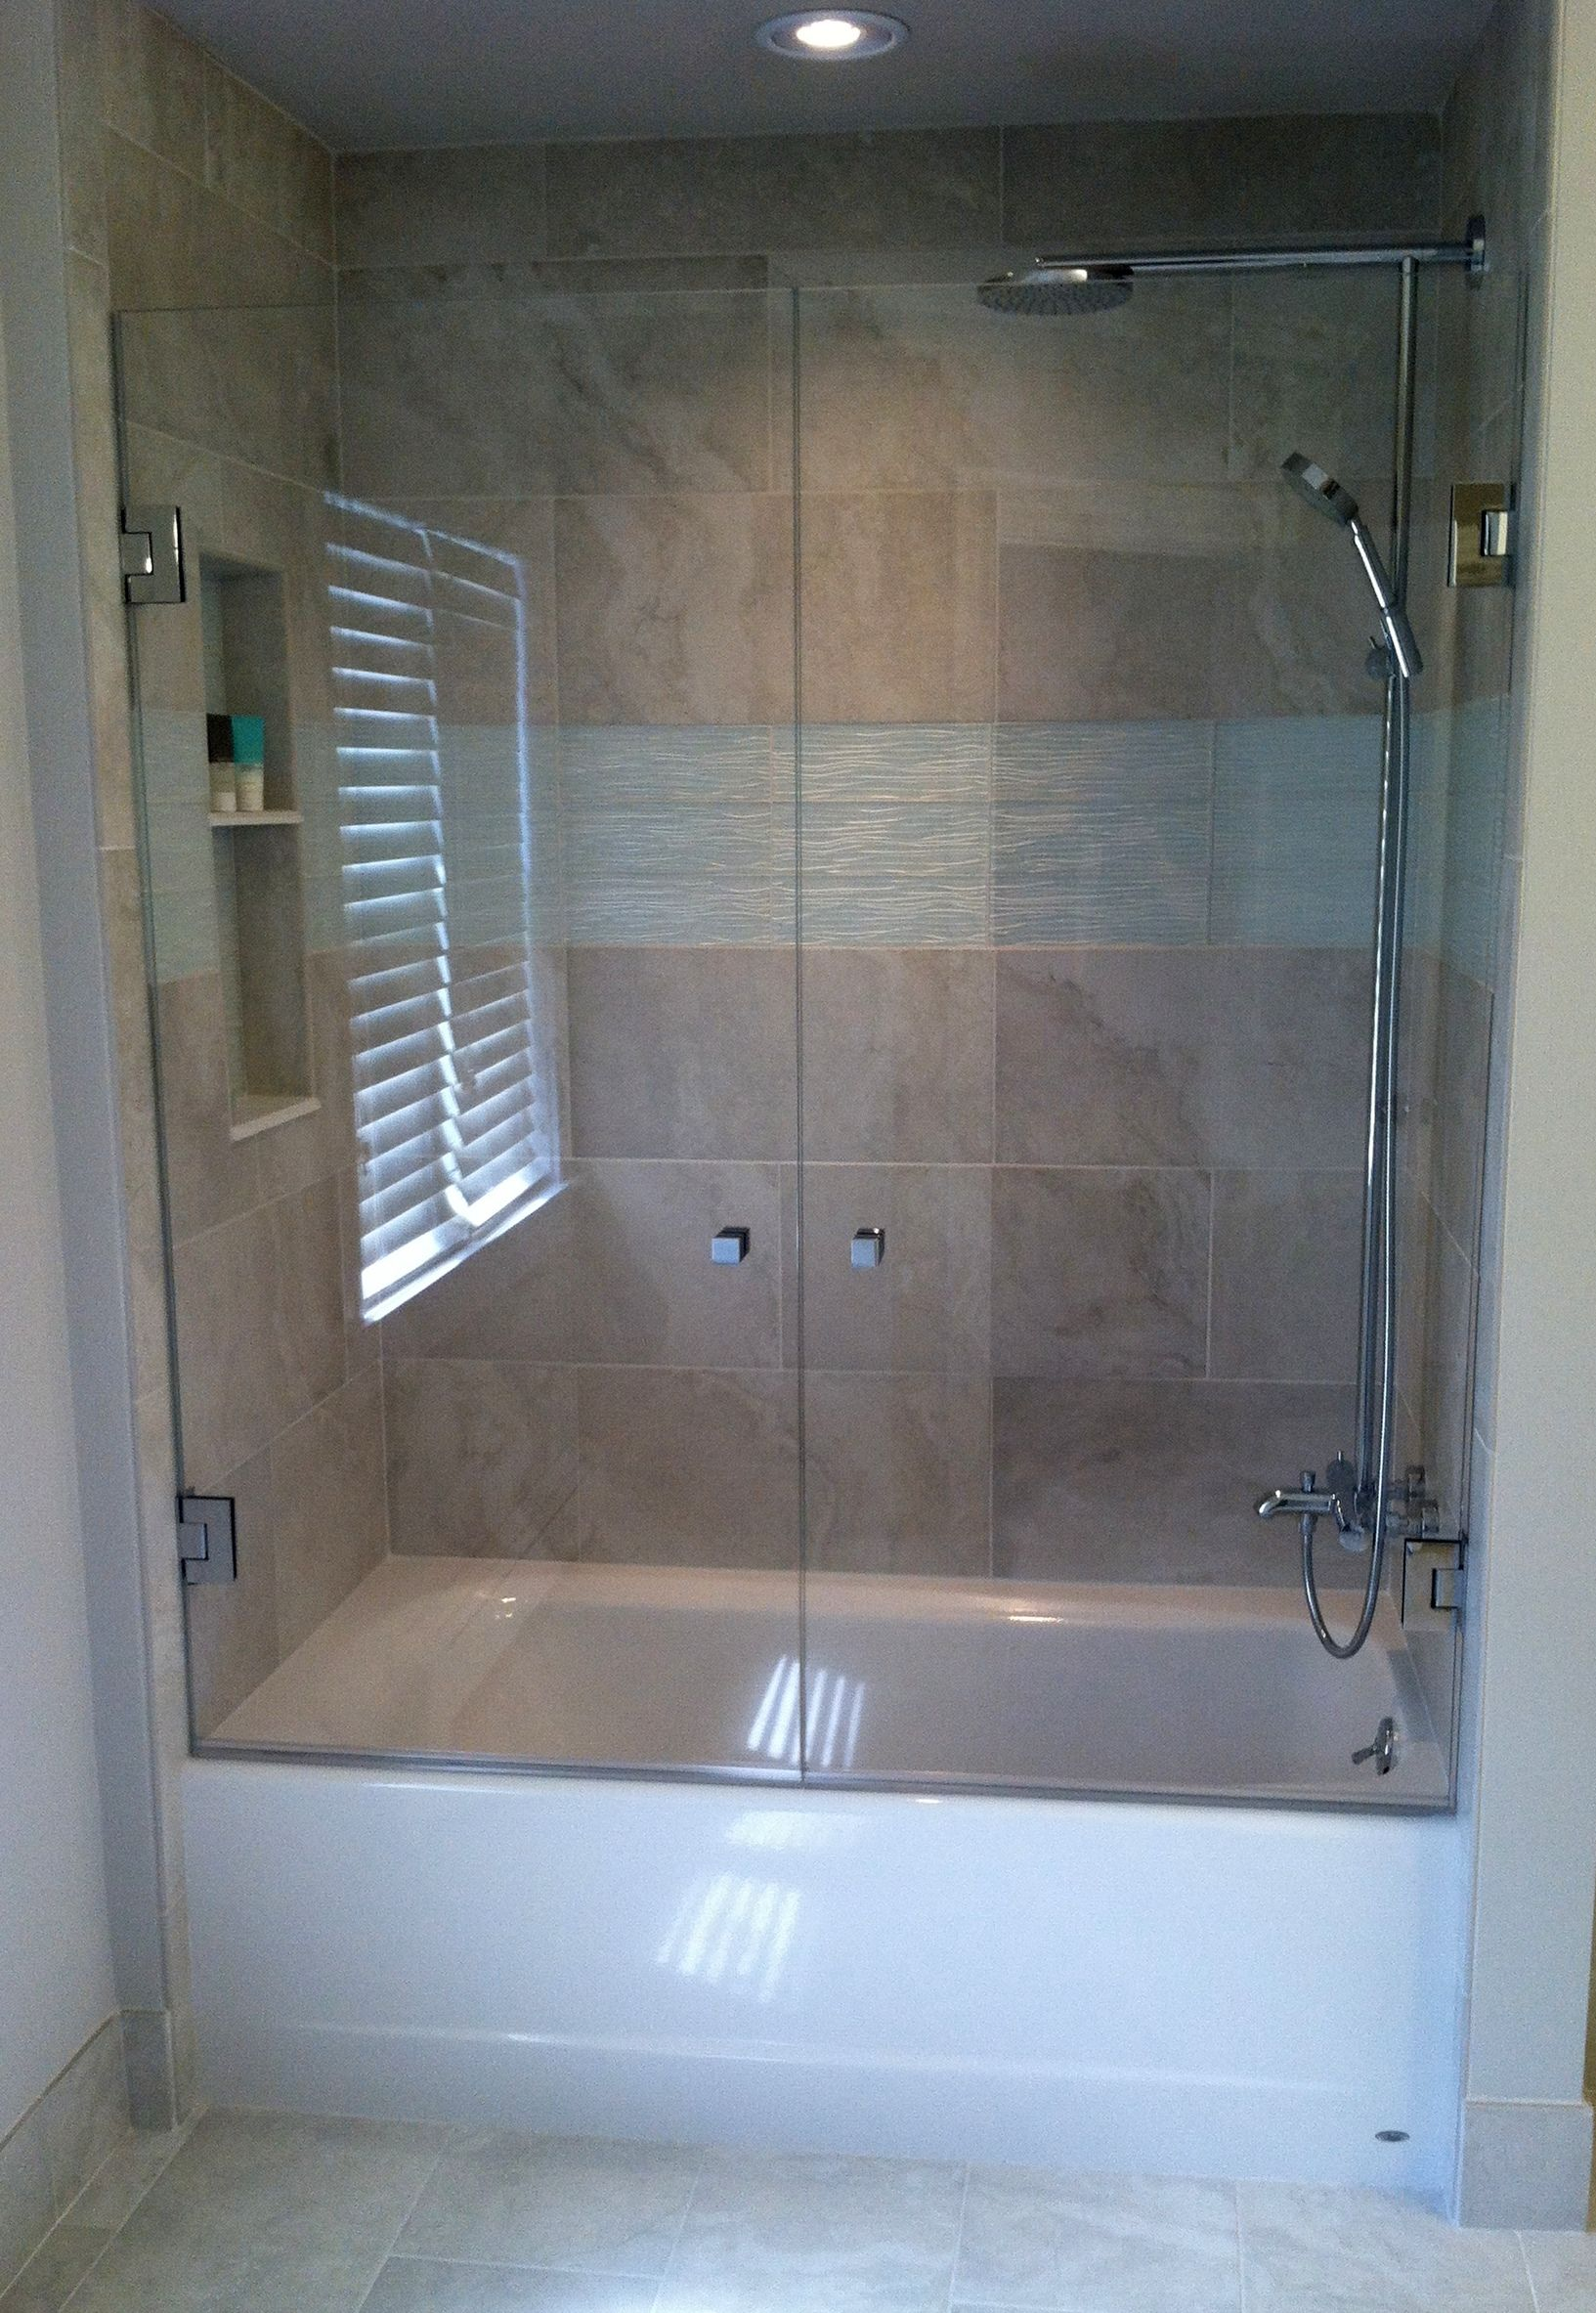 French Shower Doors Mount A Swing Door On Each Wall To Open Up Your Bathtub Space Tub Shower Doors Bathtub Shower Doors Tub Doors